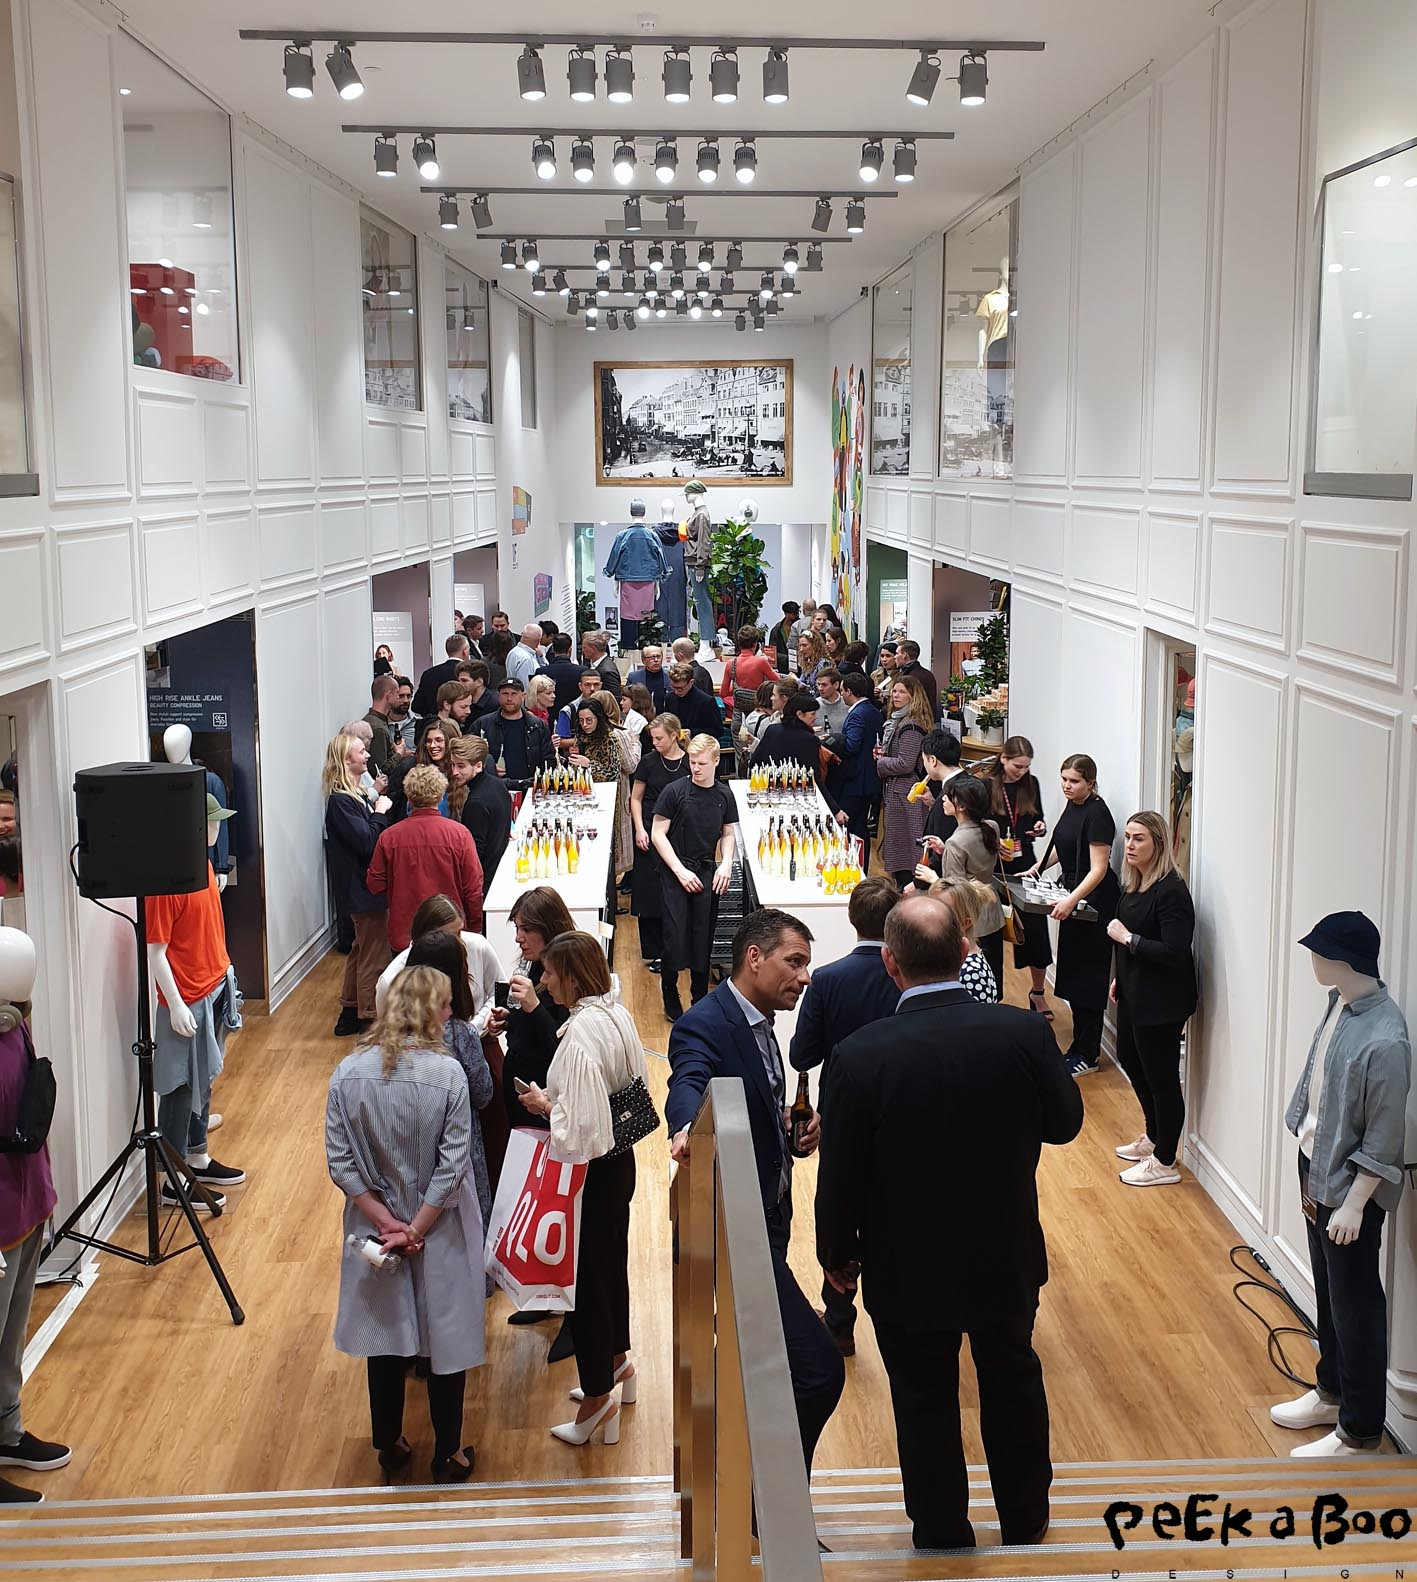 The Uniqlo store in Copenhagen was packed with guests and press at the pre-opening event last friday.